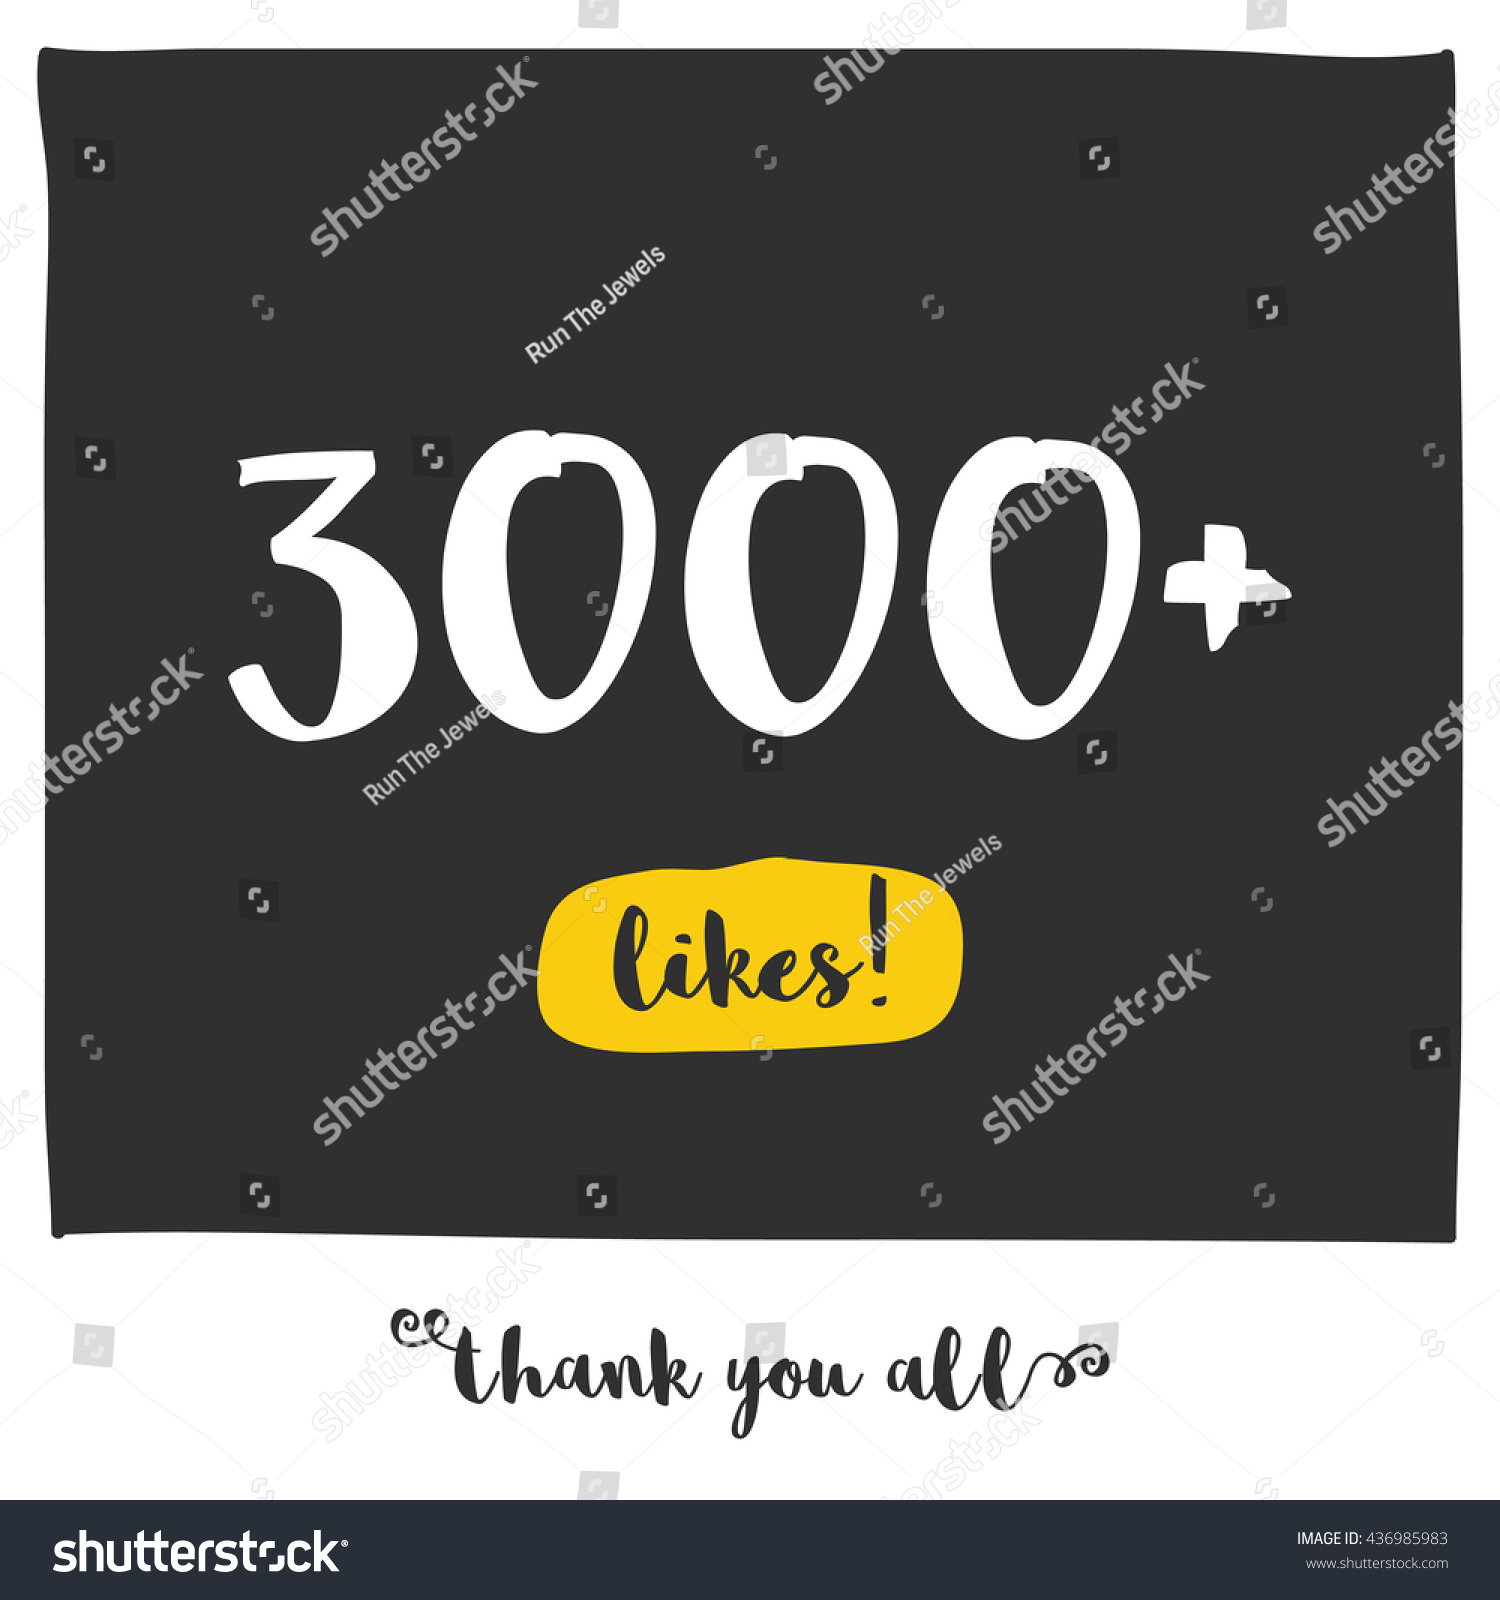 Thank You All 3000 Likes Vector Stock Vector (Royalty Free ...